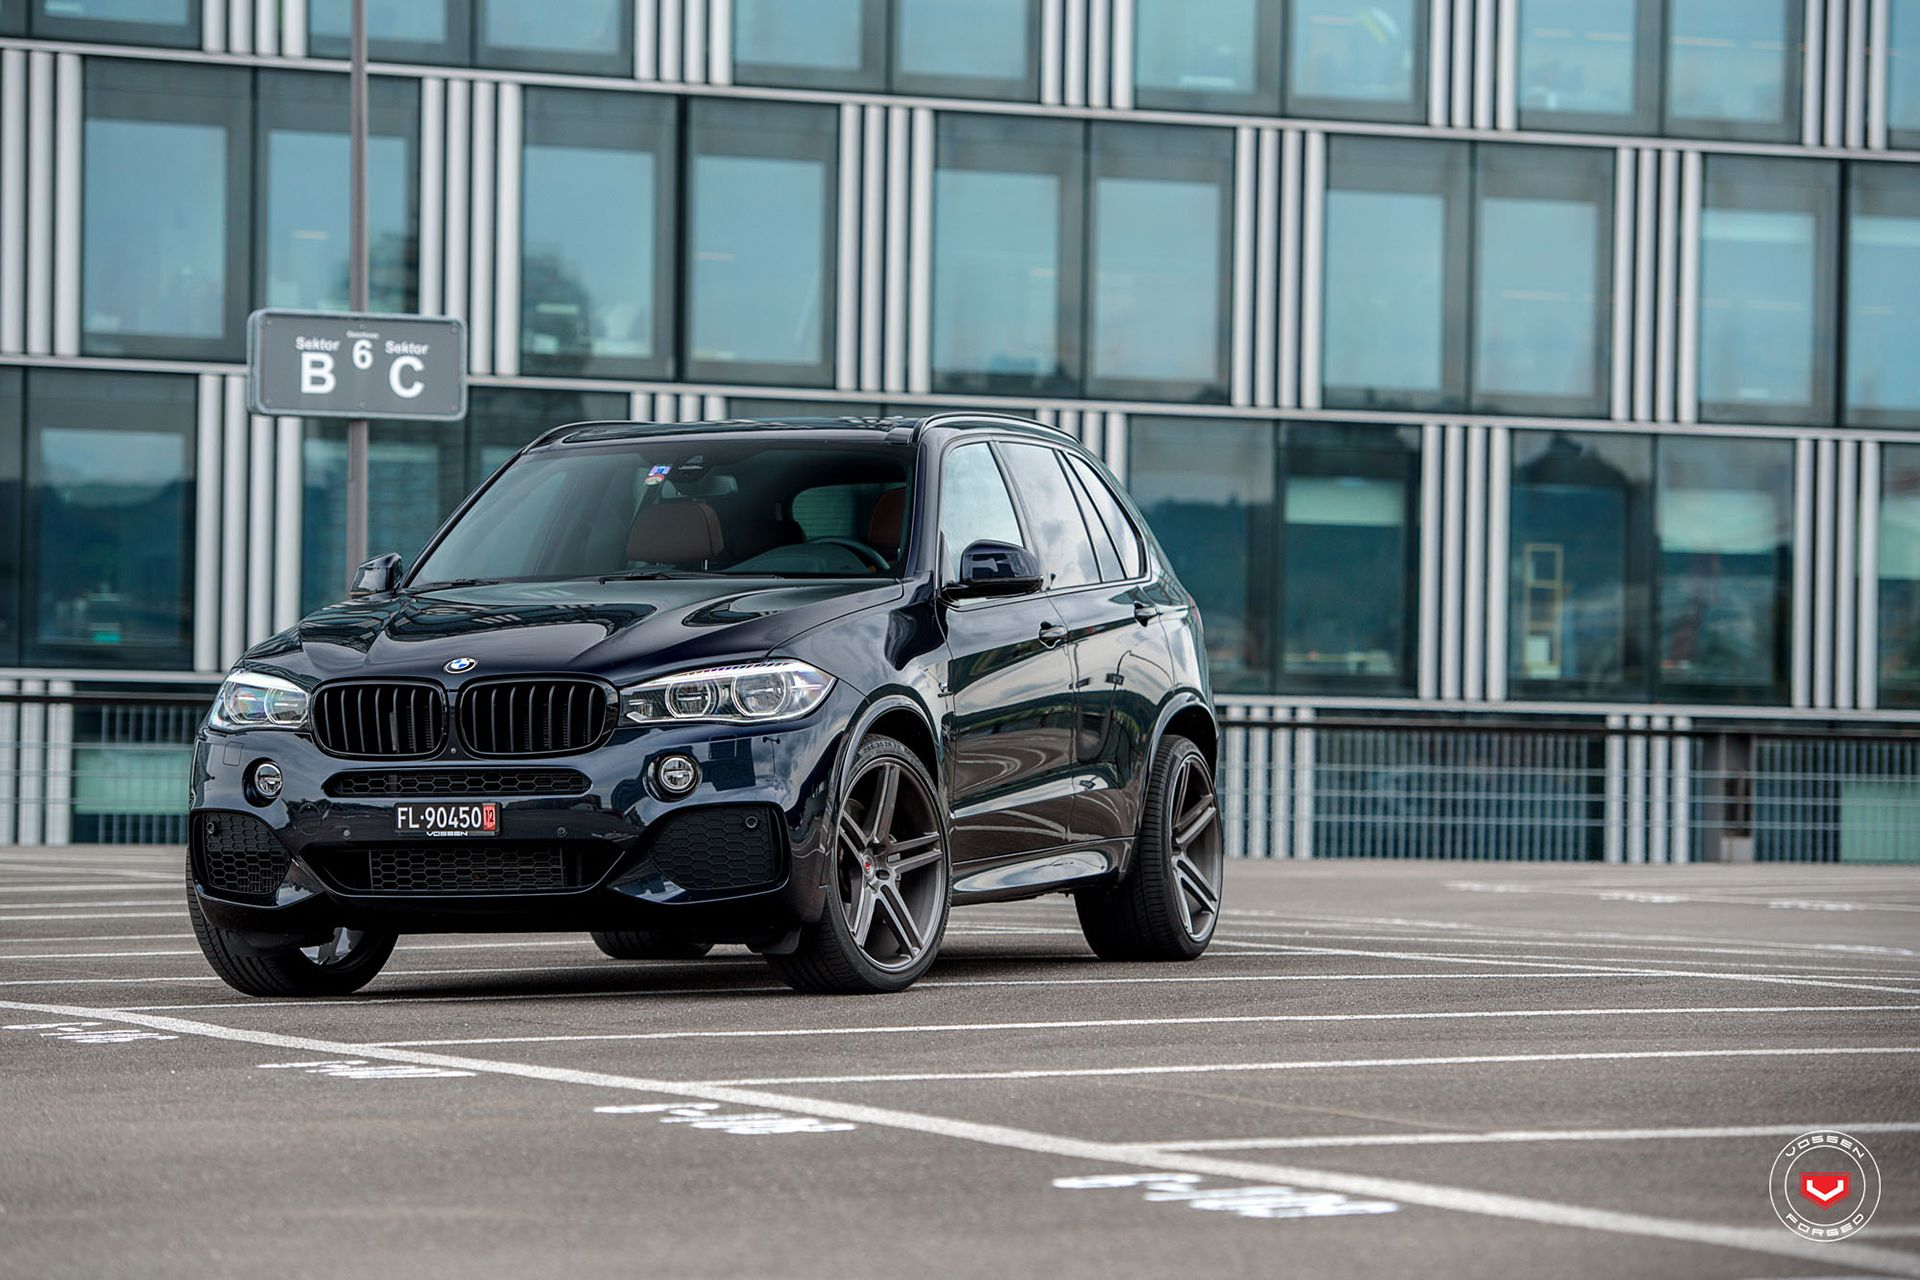 Carbon Black Metallic Bmw X5 With Vossen Vps 302 Forged Wheels